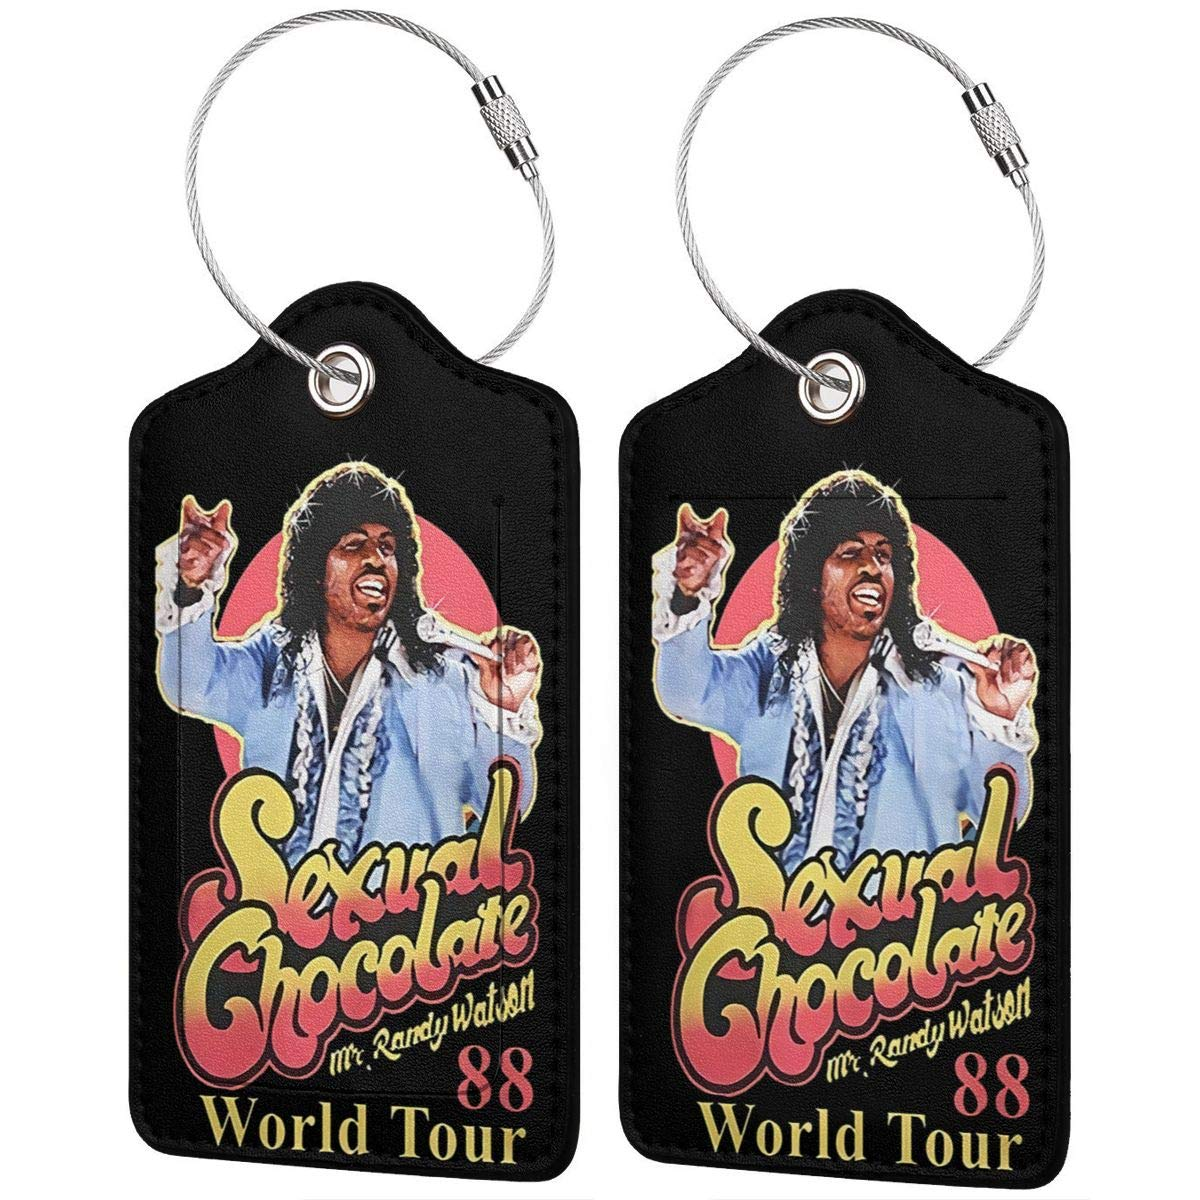 4 Kinds Of Specifications Sexual-Choco-late-World-Tour-88 Printed?Leather Luggage Tag /& Bag Tag With Privacy Cover